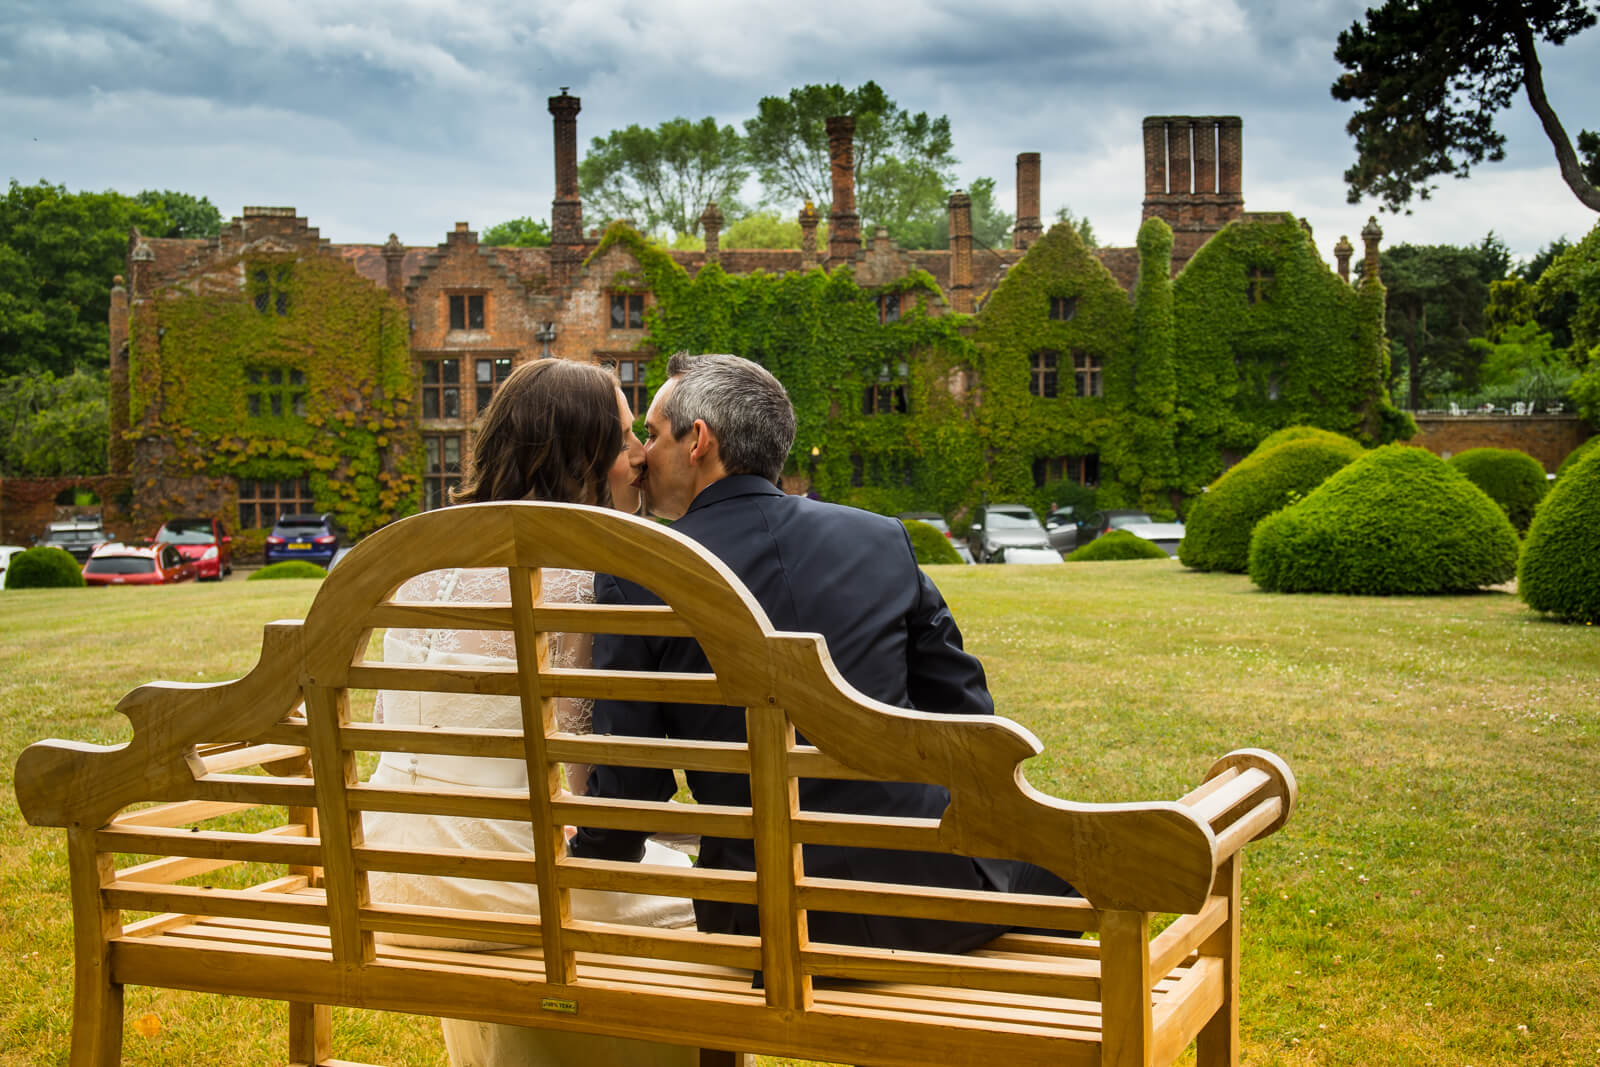 Picture of a bride and groom on a bench taken from behind with a country manor house in the background